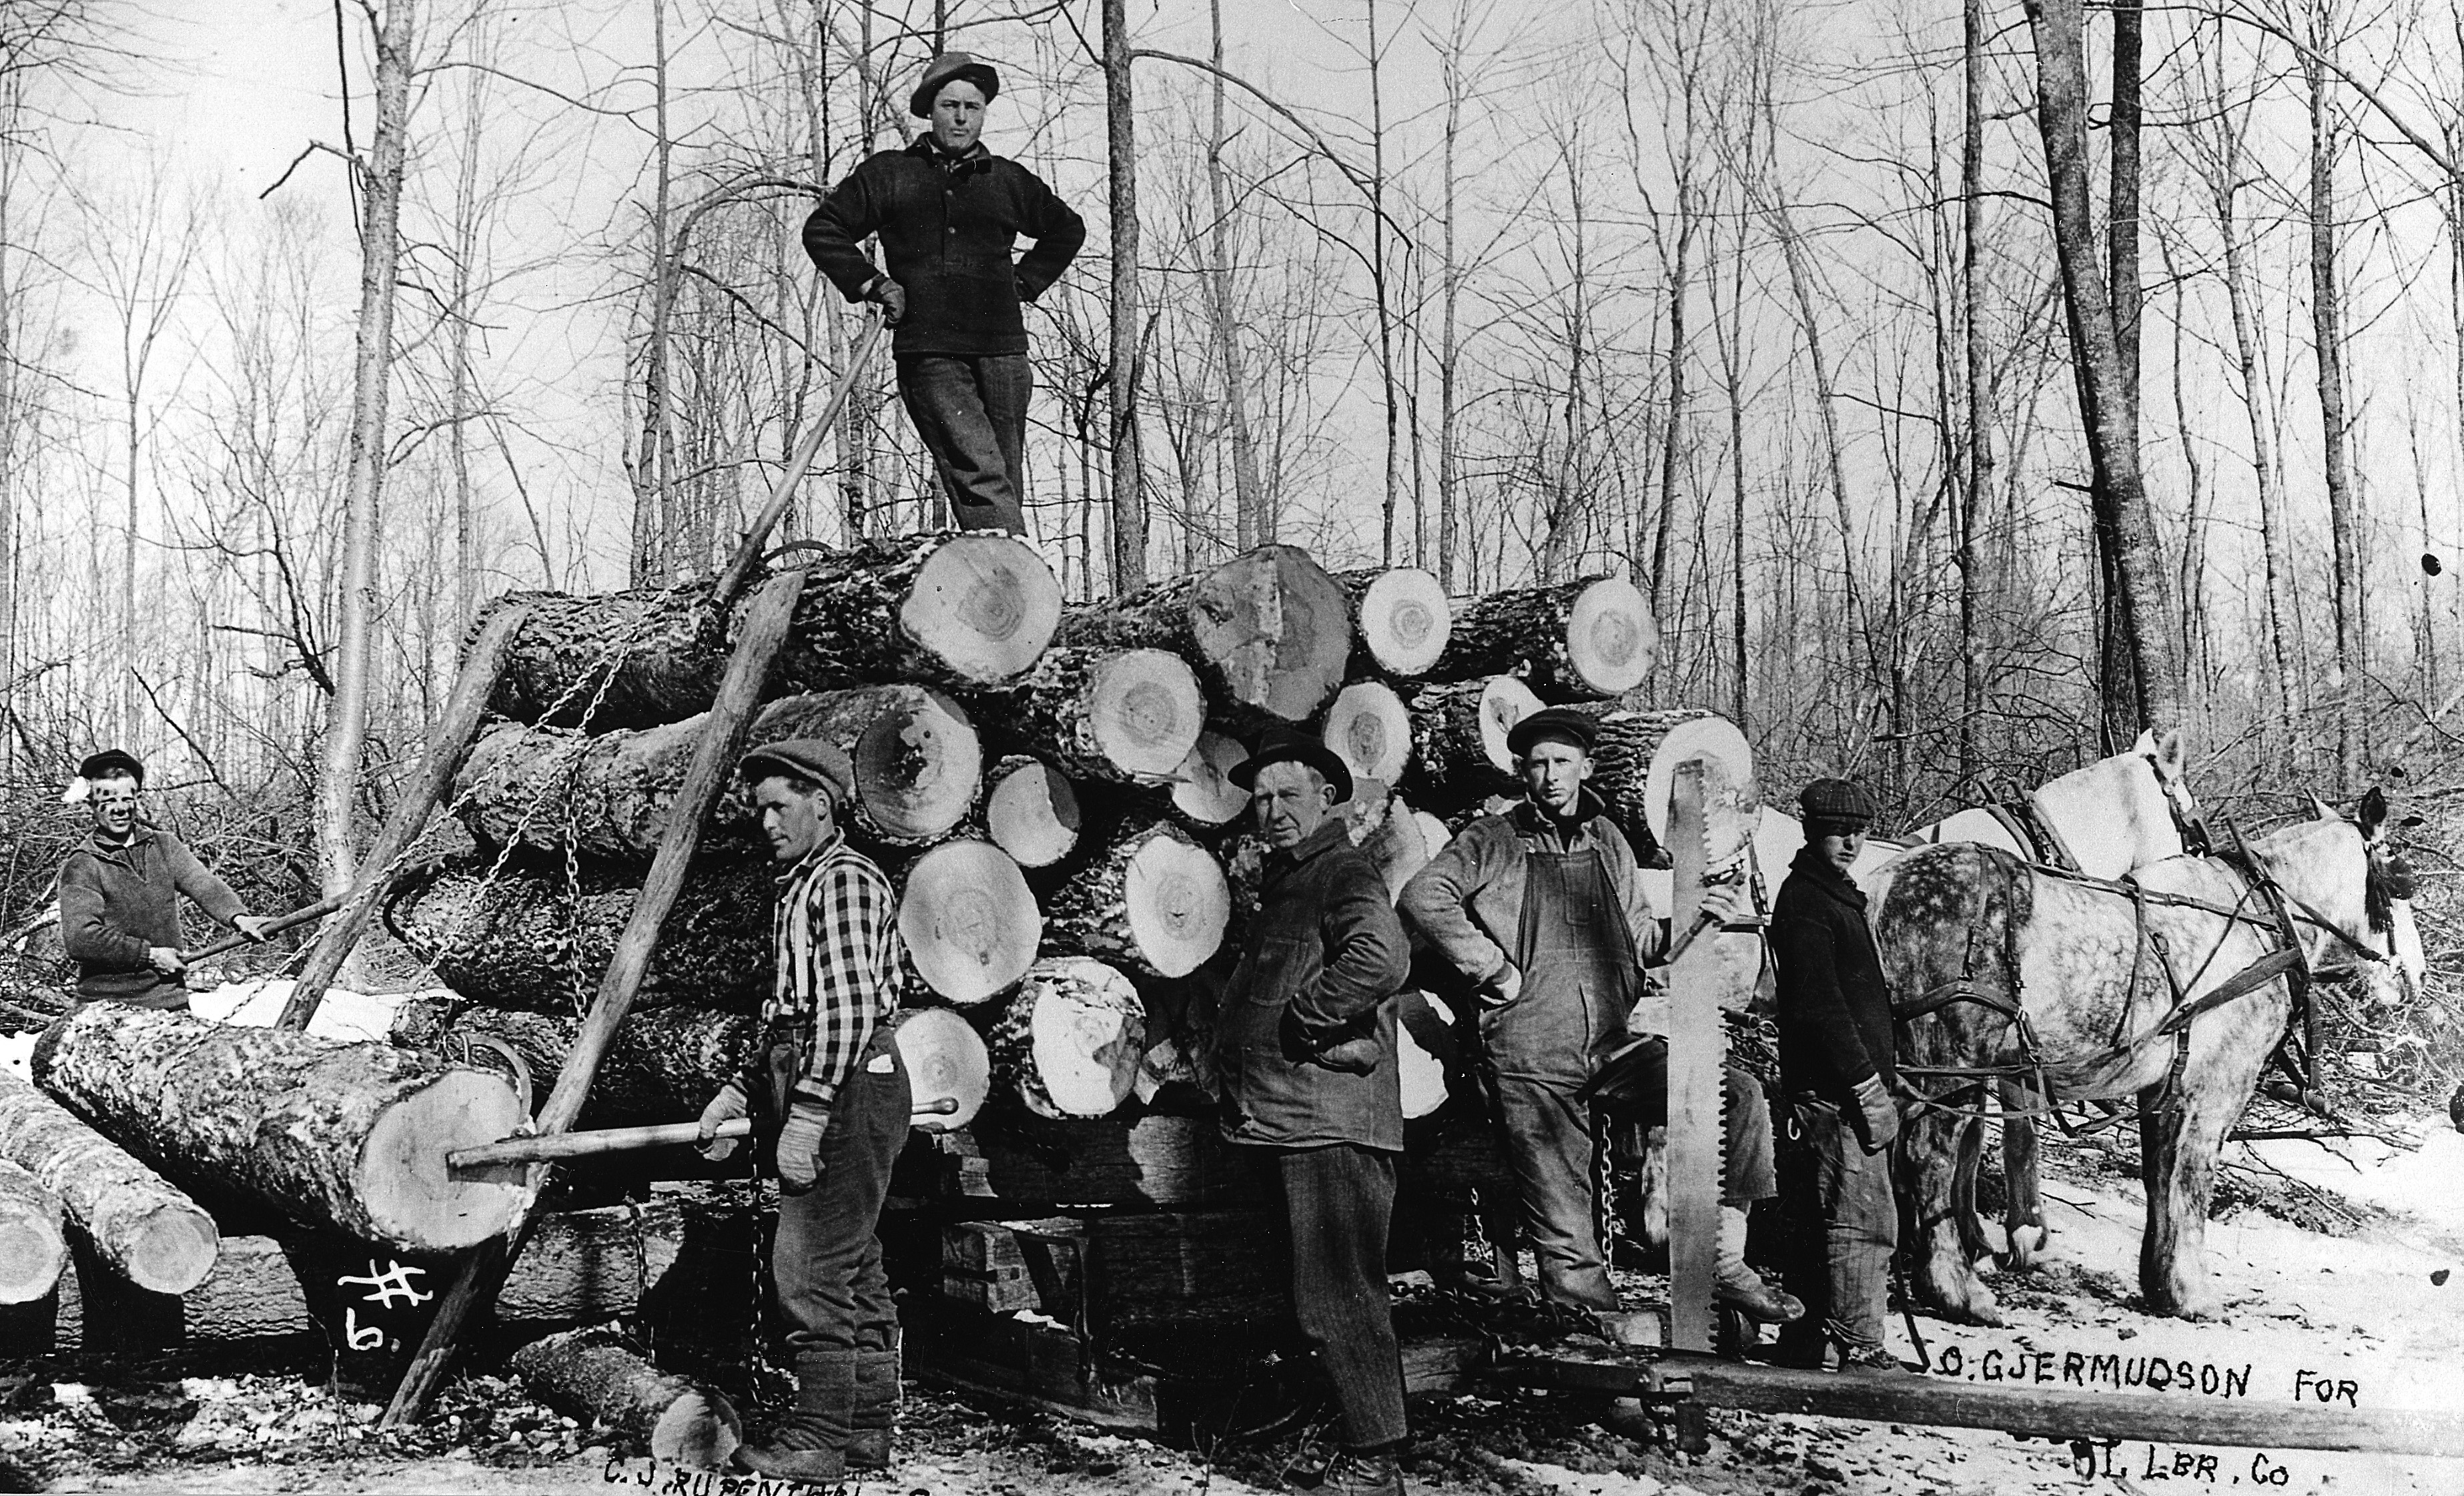 Tigerton Lumber Company. Oliver Jermundson is second from the right. Courtesy of Minocqua Museum